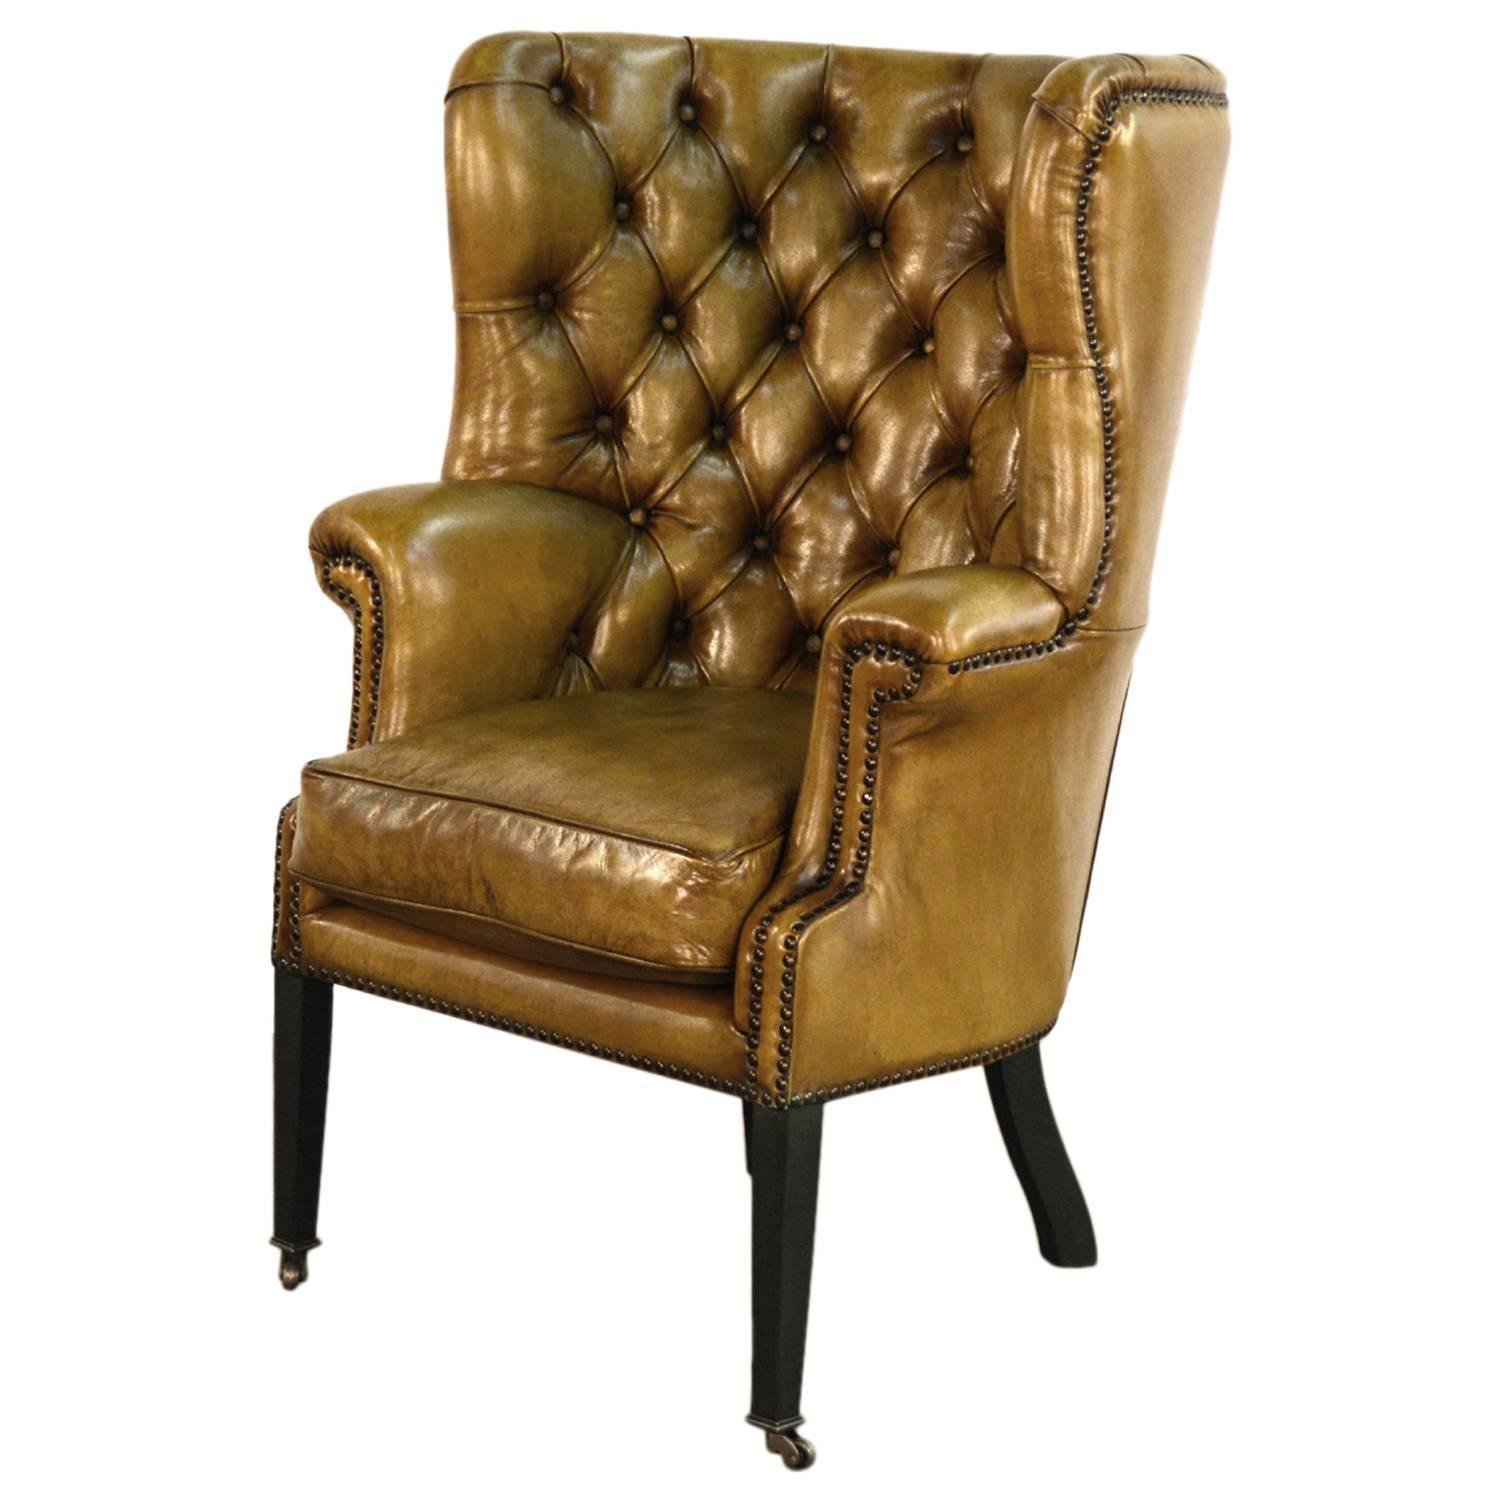 Red Leather Wingback Chair For Sale: Upholstered Wing Chair In Vintage Green Leather For Sale